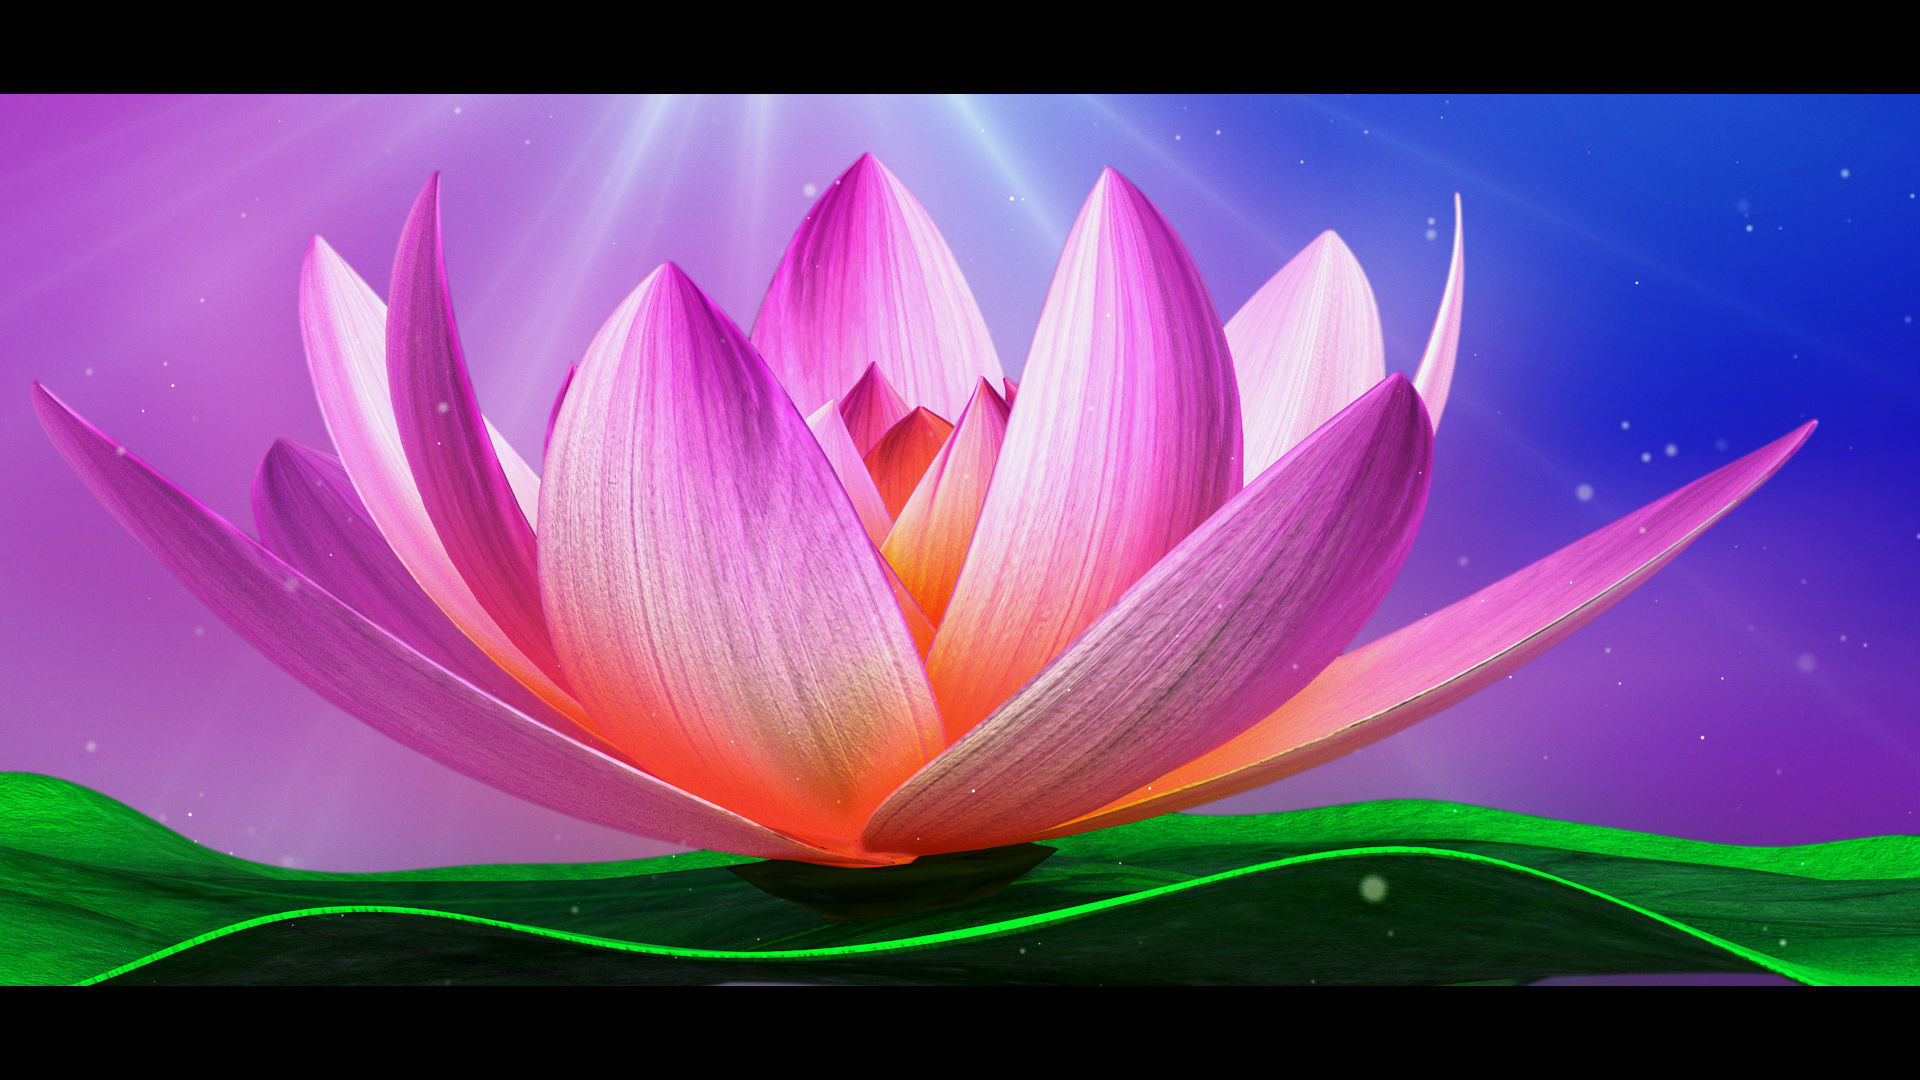 Lotus-Water Lily 3d Animated